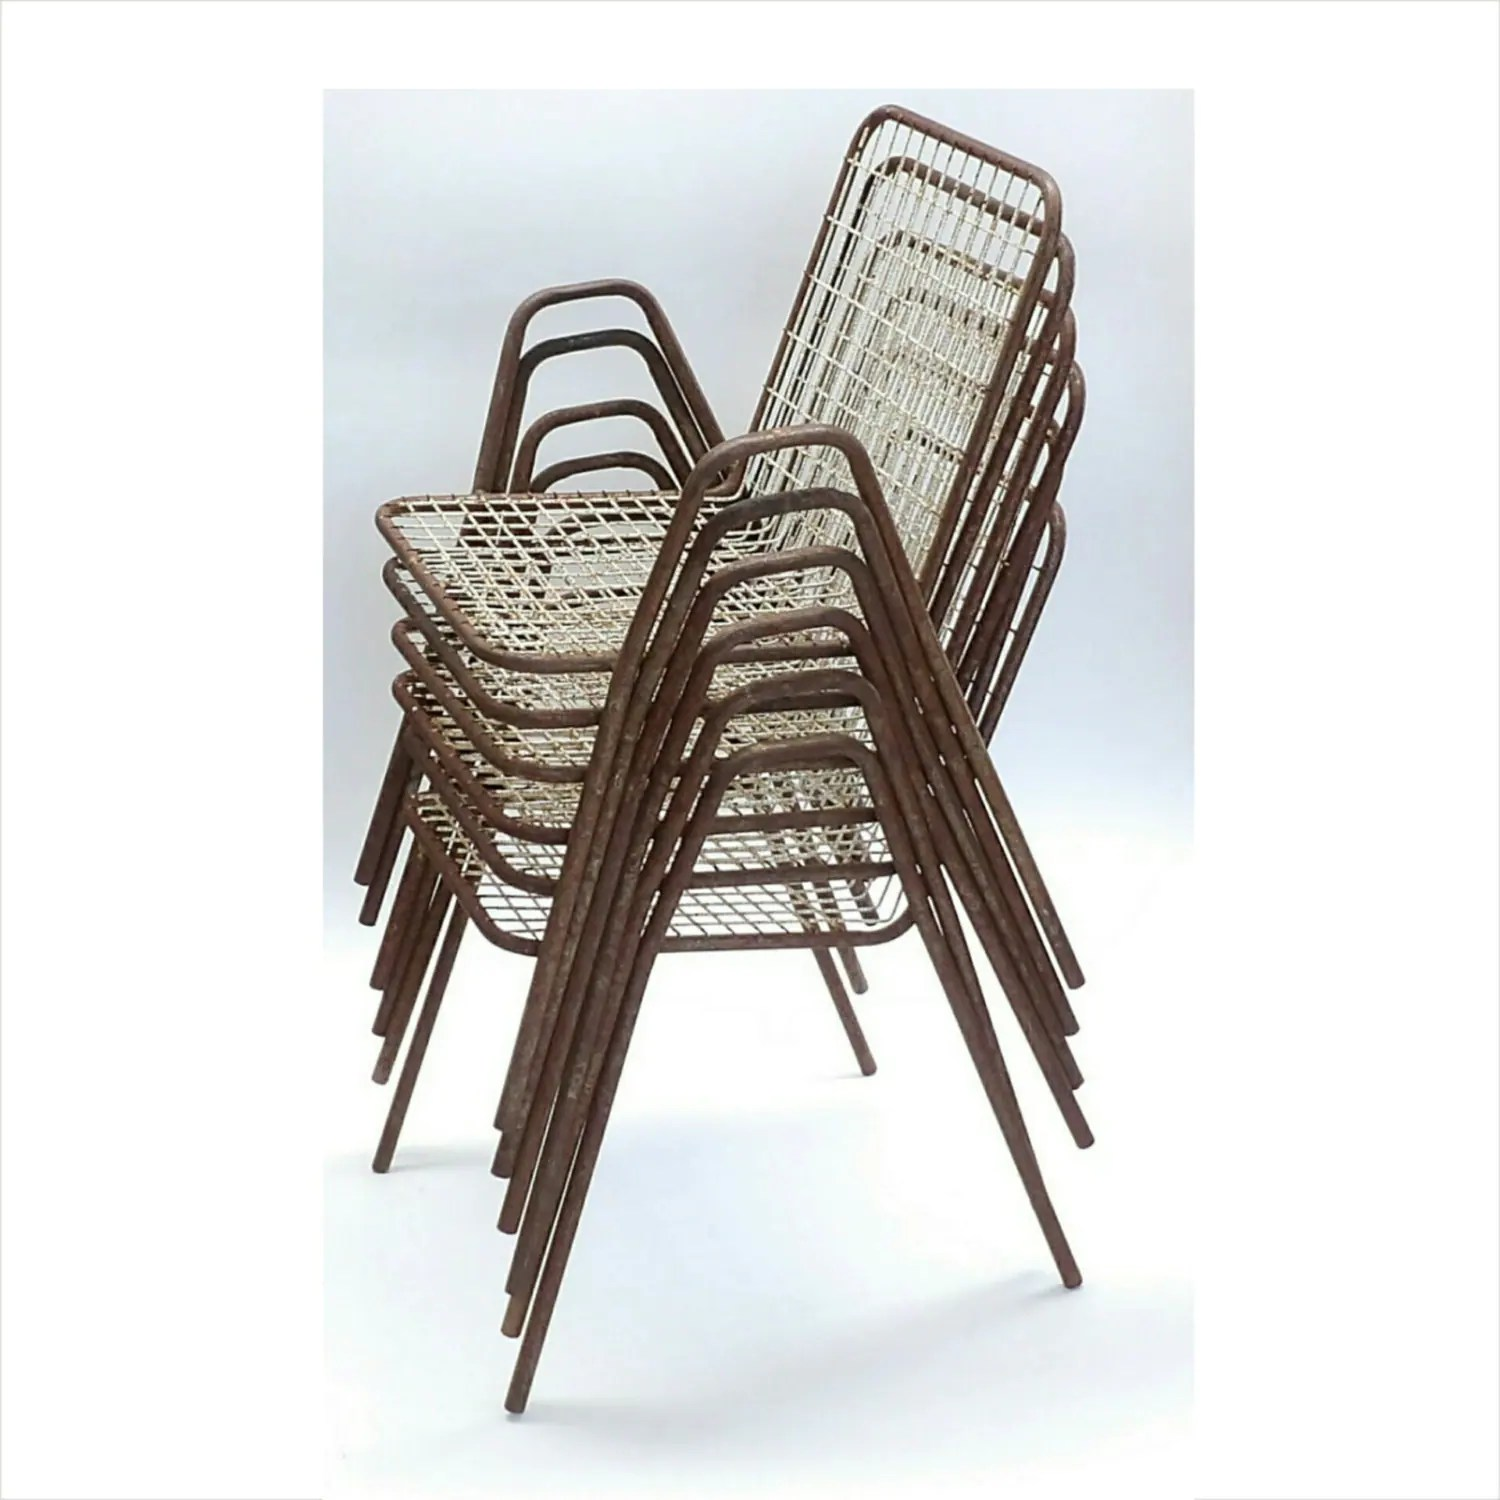 Emu Chairs Vintage Emu Italian Outdoor Furniture Metal Made In Italy